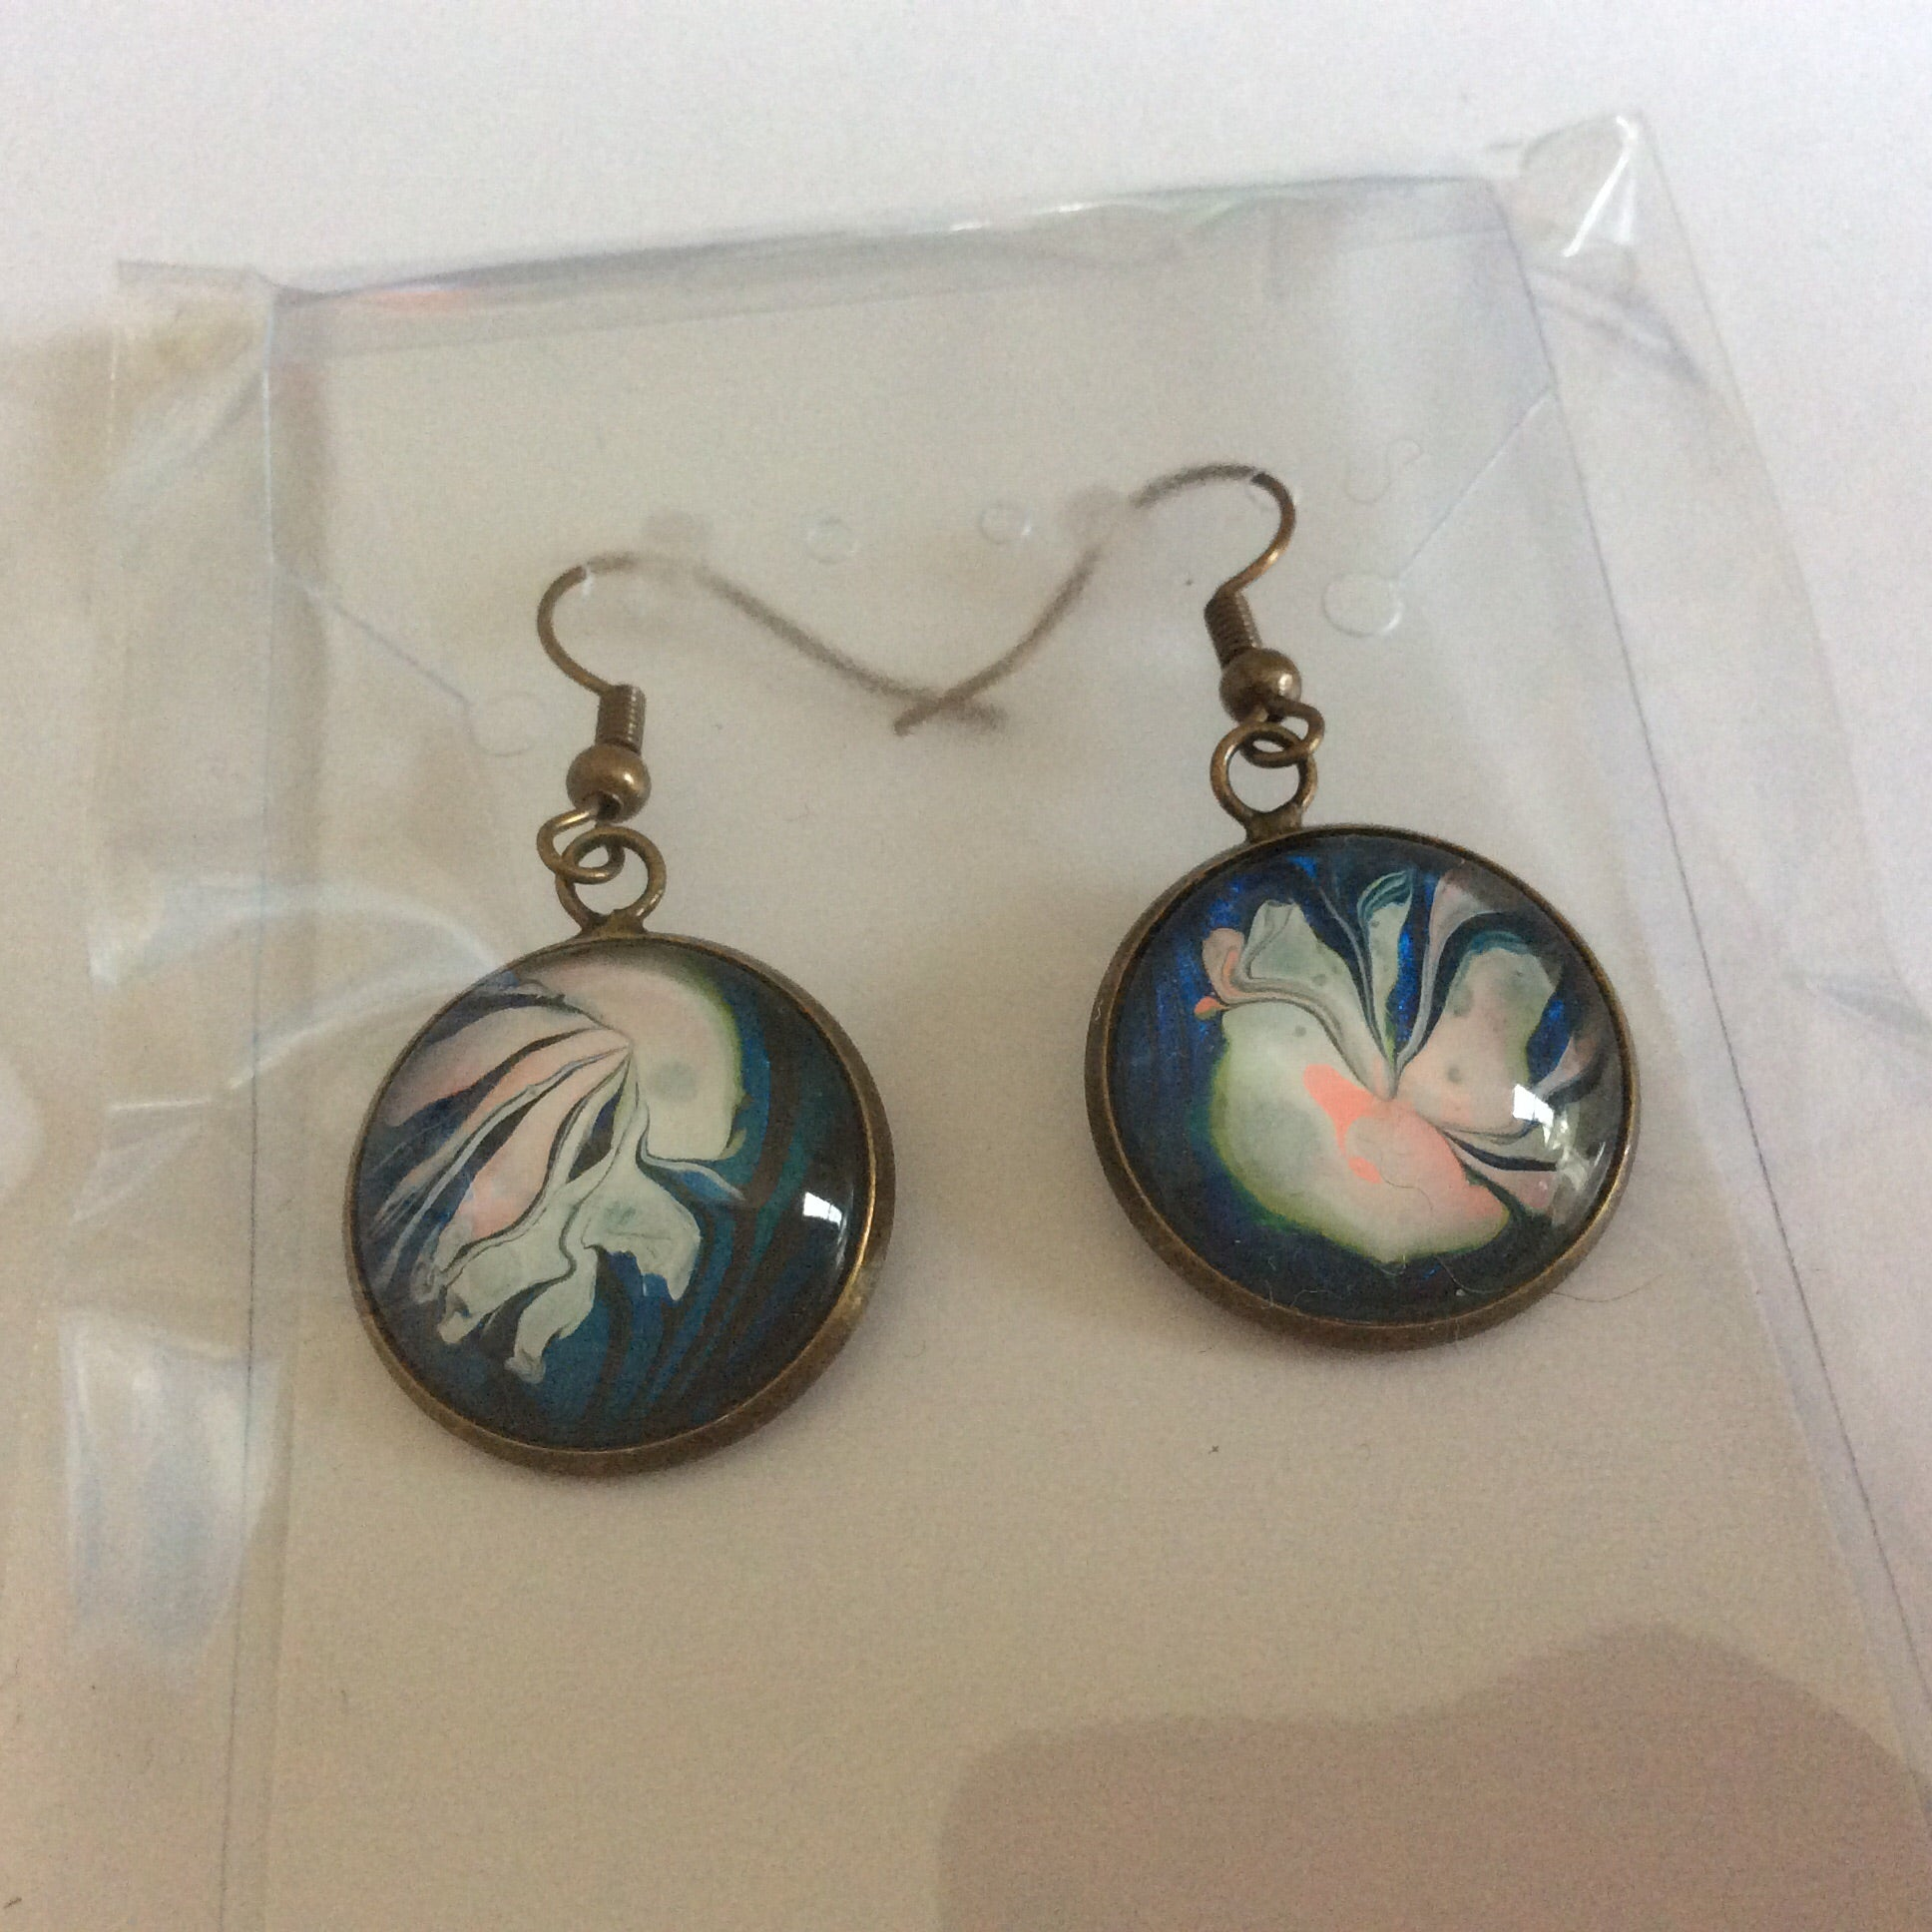 Earrings, Whimsical Jellyfish-Jewelry-Fullamoon Designs